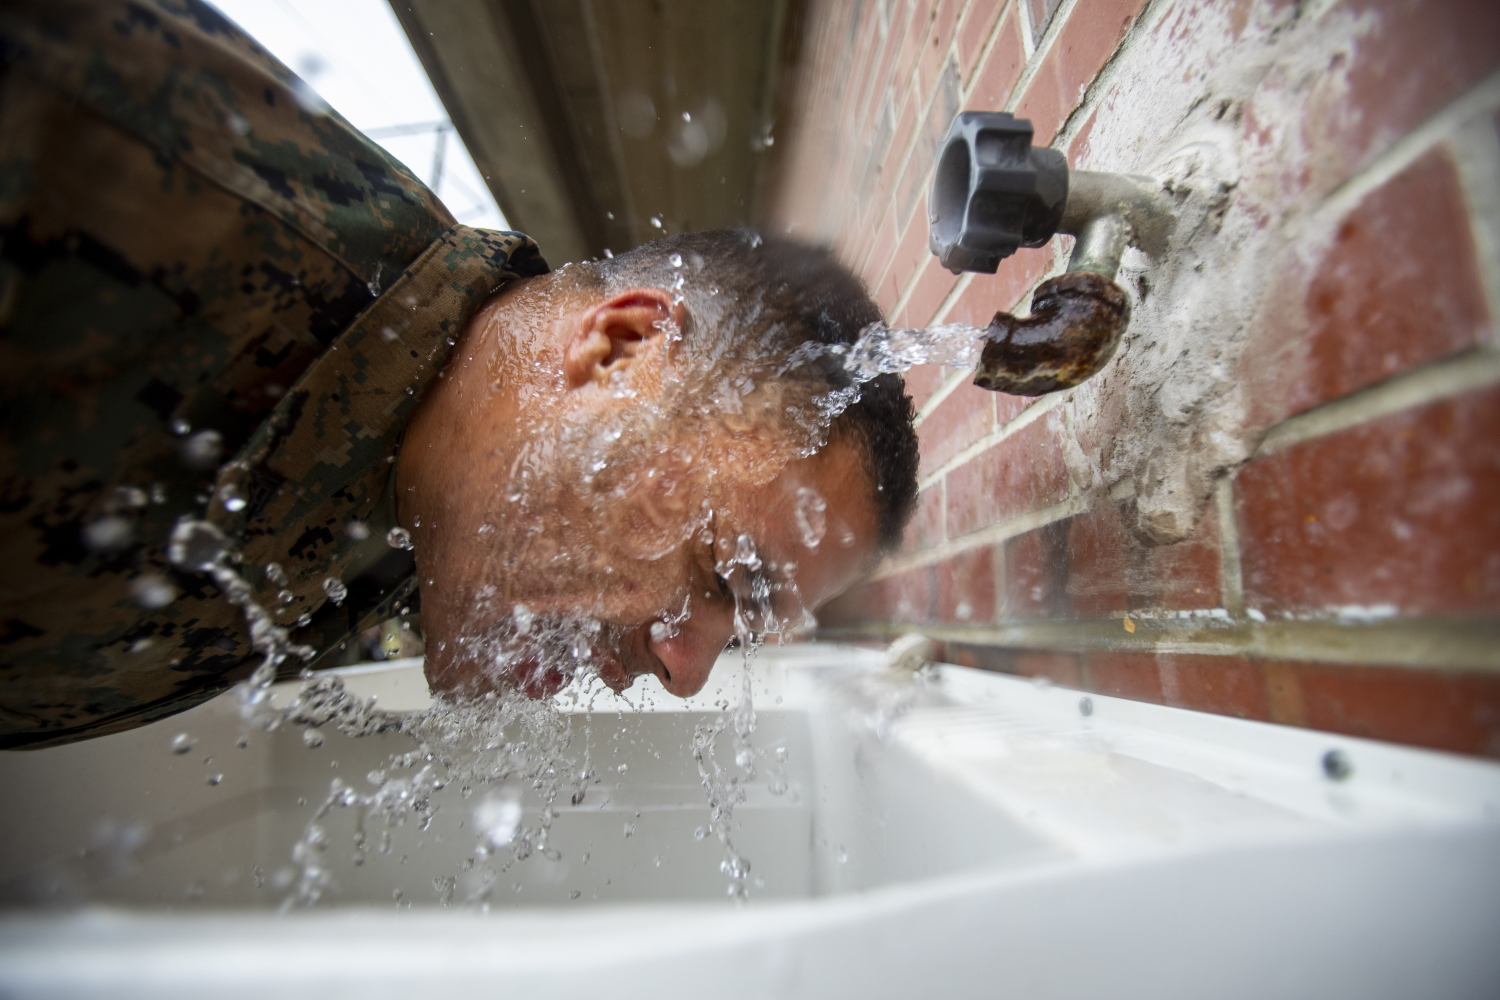 A Marine attached to Deployment Processing Command Reserve Support Unit-East, Force Headquarters Group, runs water on his face after gas chamber training at Marine Corps Base Camp Lejeune, N.C., Oct. 22, 2019. (Sgt. Andy O. Martinez/Marine Corps)